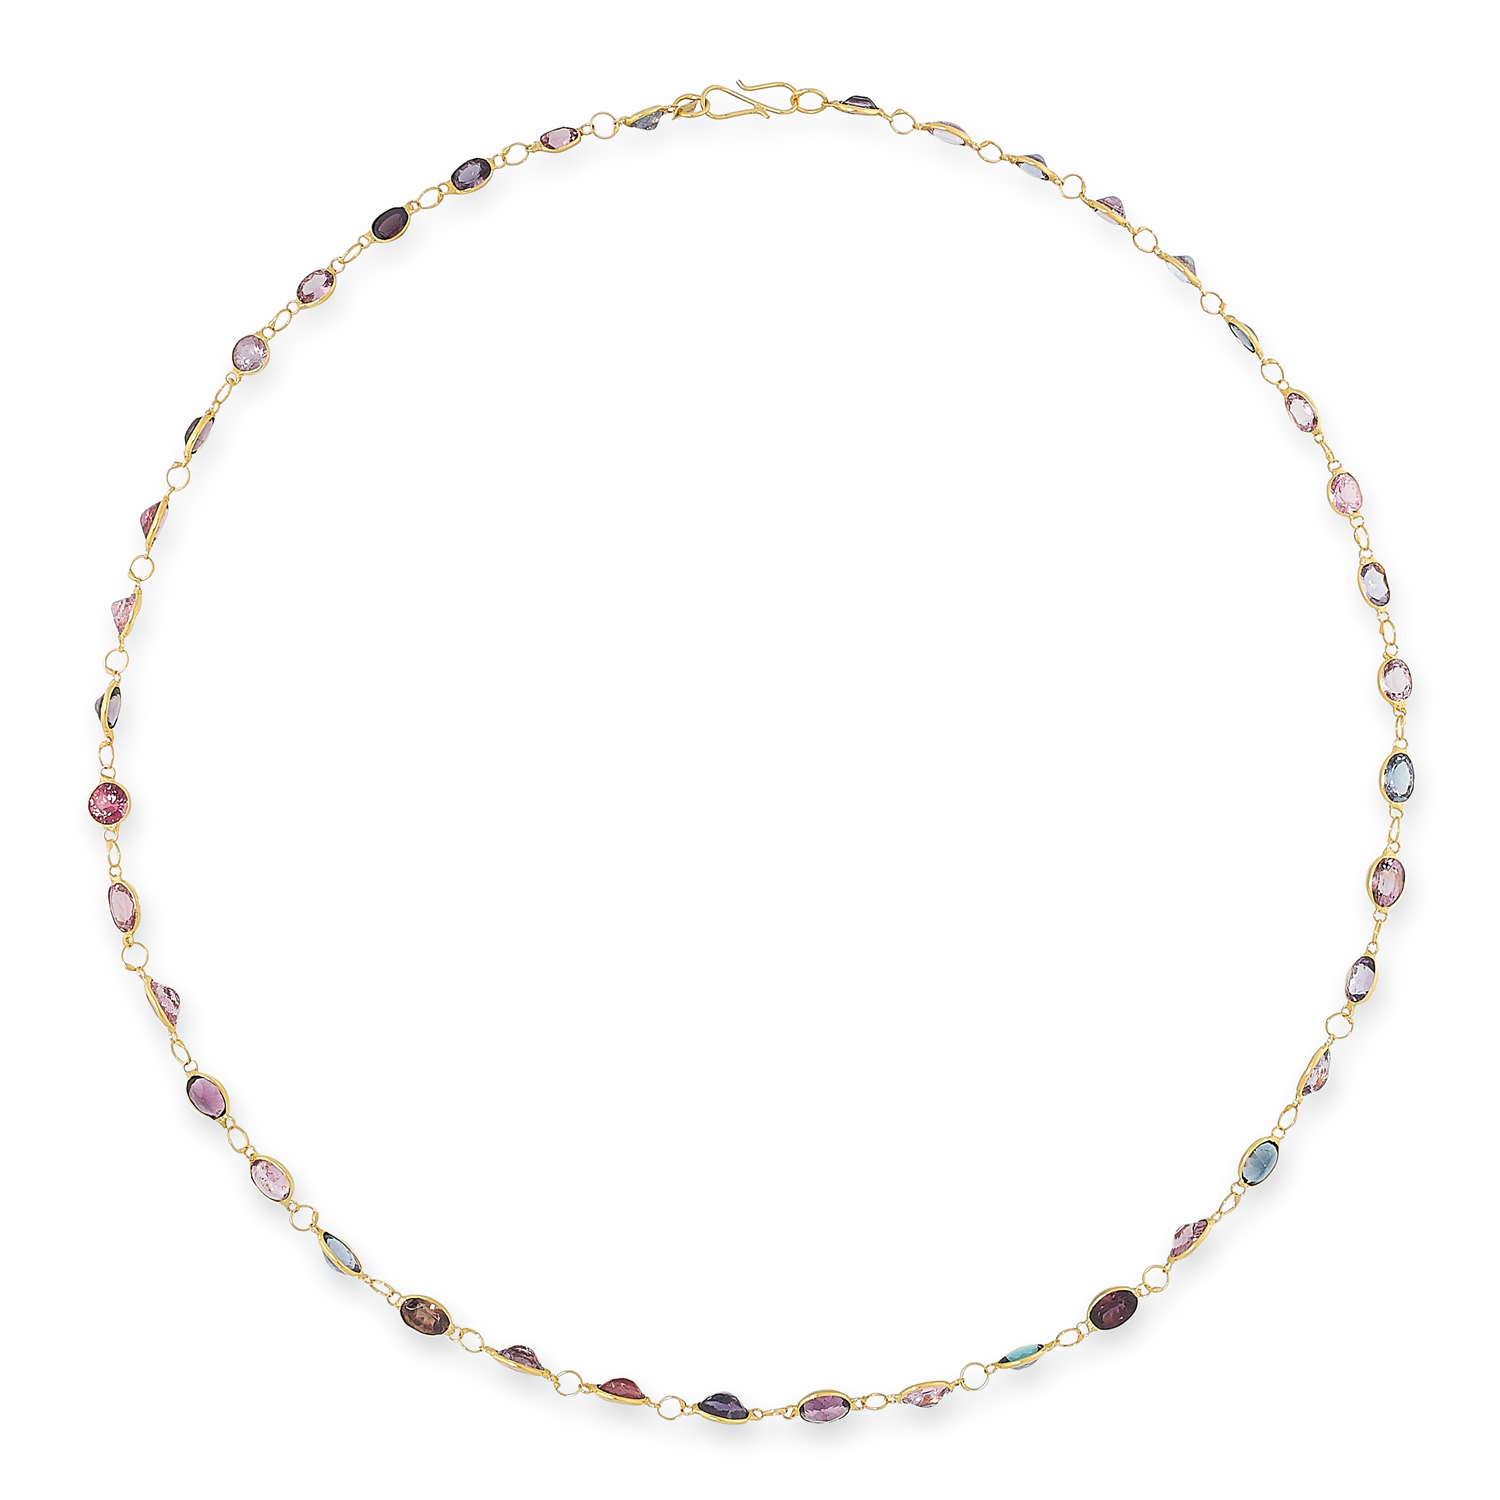 A MULTICOLOURED SPINEL NECKLACE comprising a single row of links, set with oval and round cut